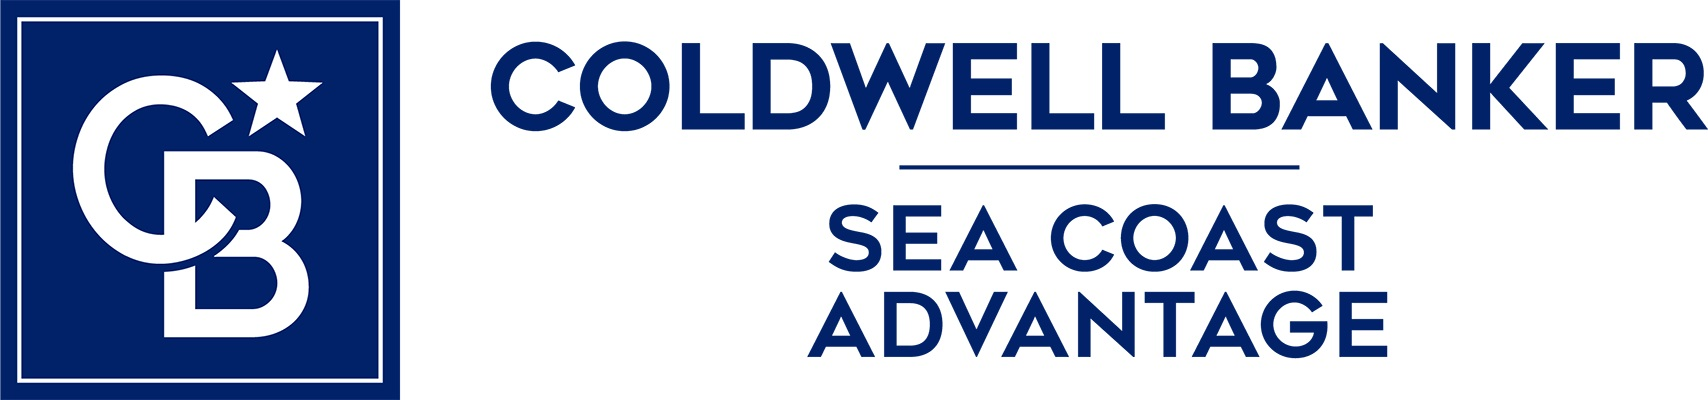 Ryan McKelvey - Coldwell Banker Sea Coast Advantage Realty